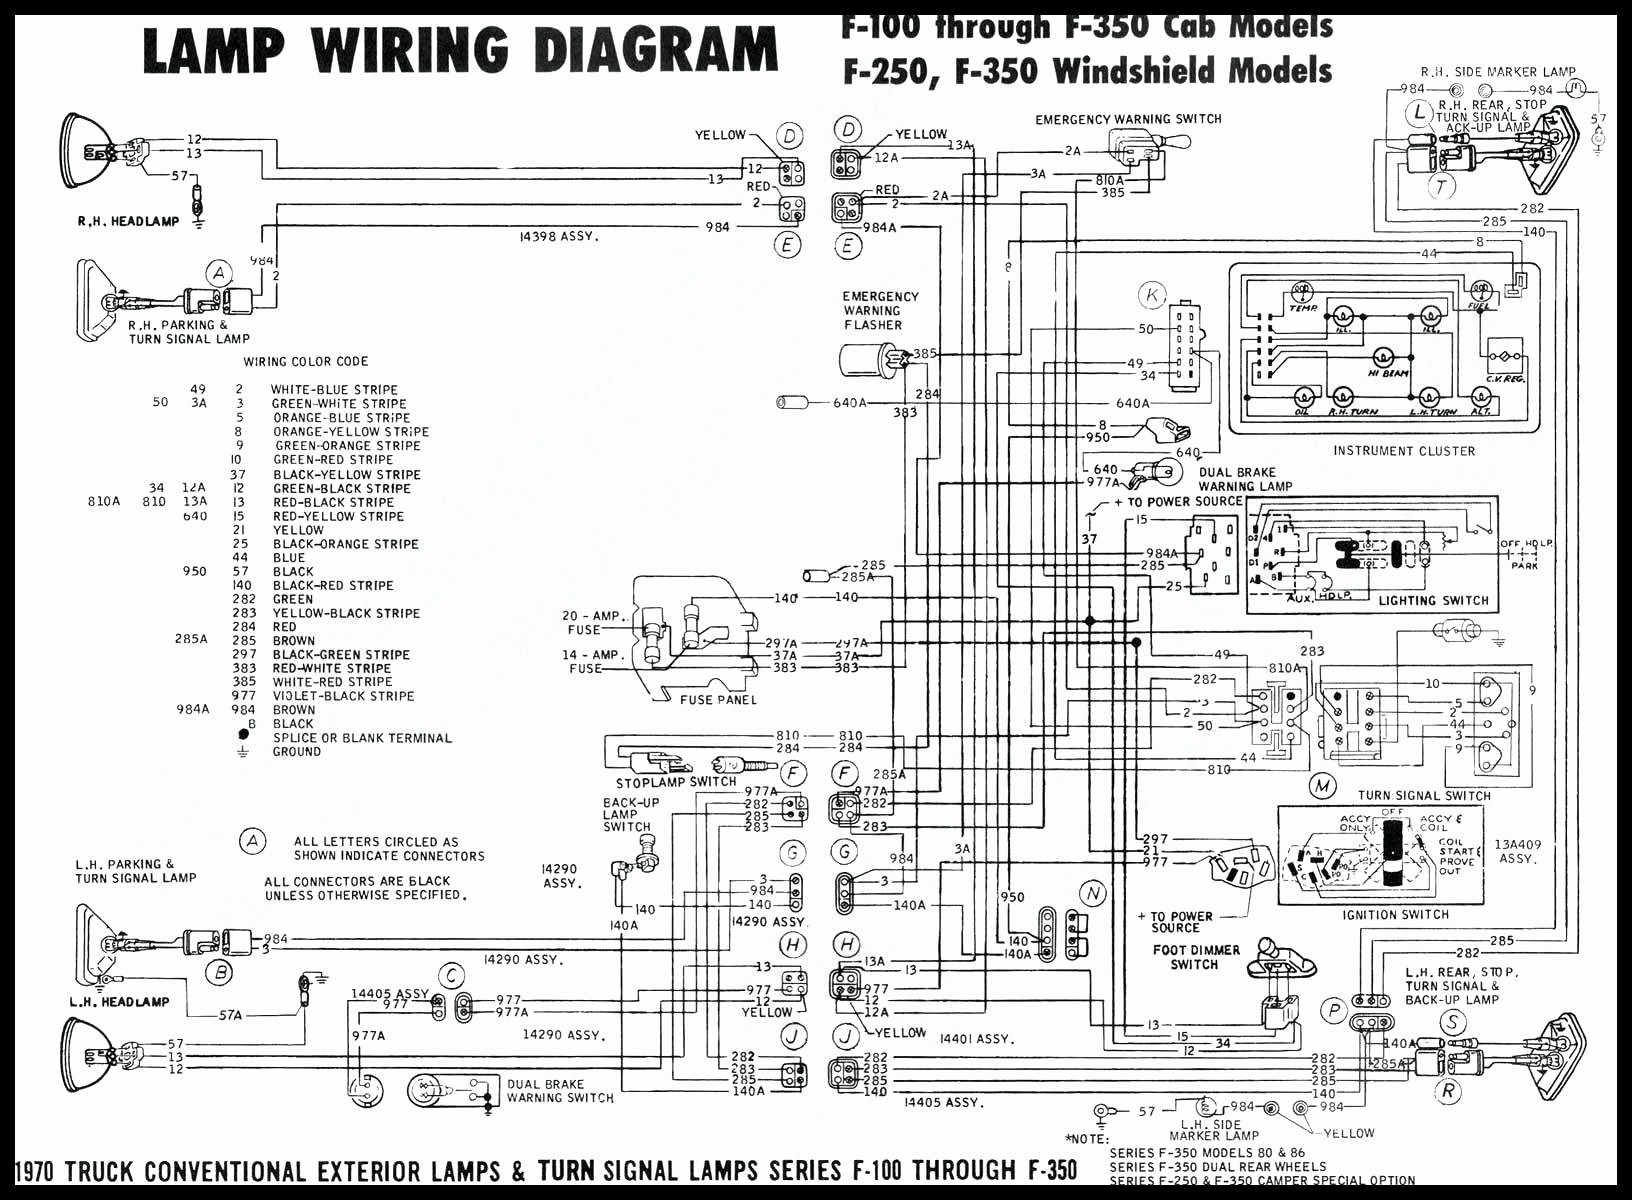 wiring diagram likewise 1977 chevy truck vacuum diagram besides rh frana co